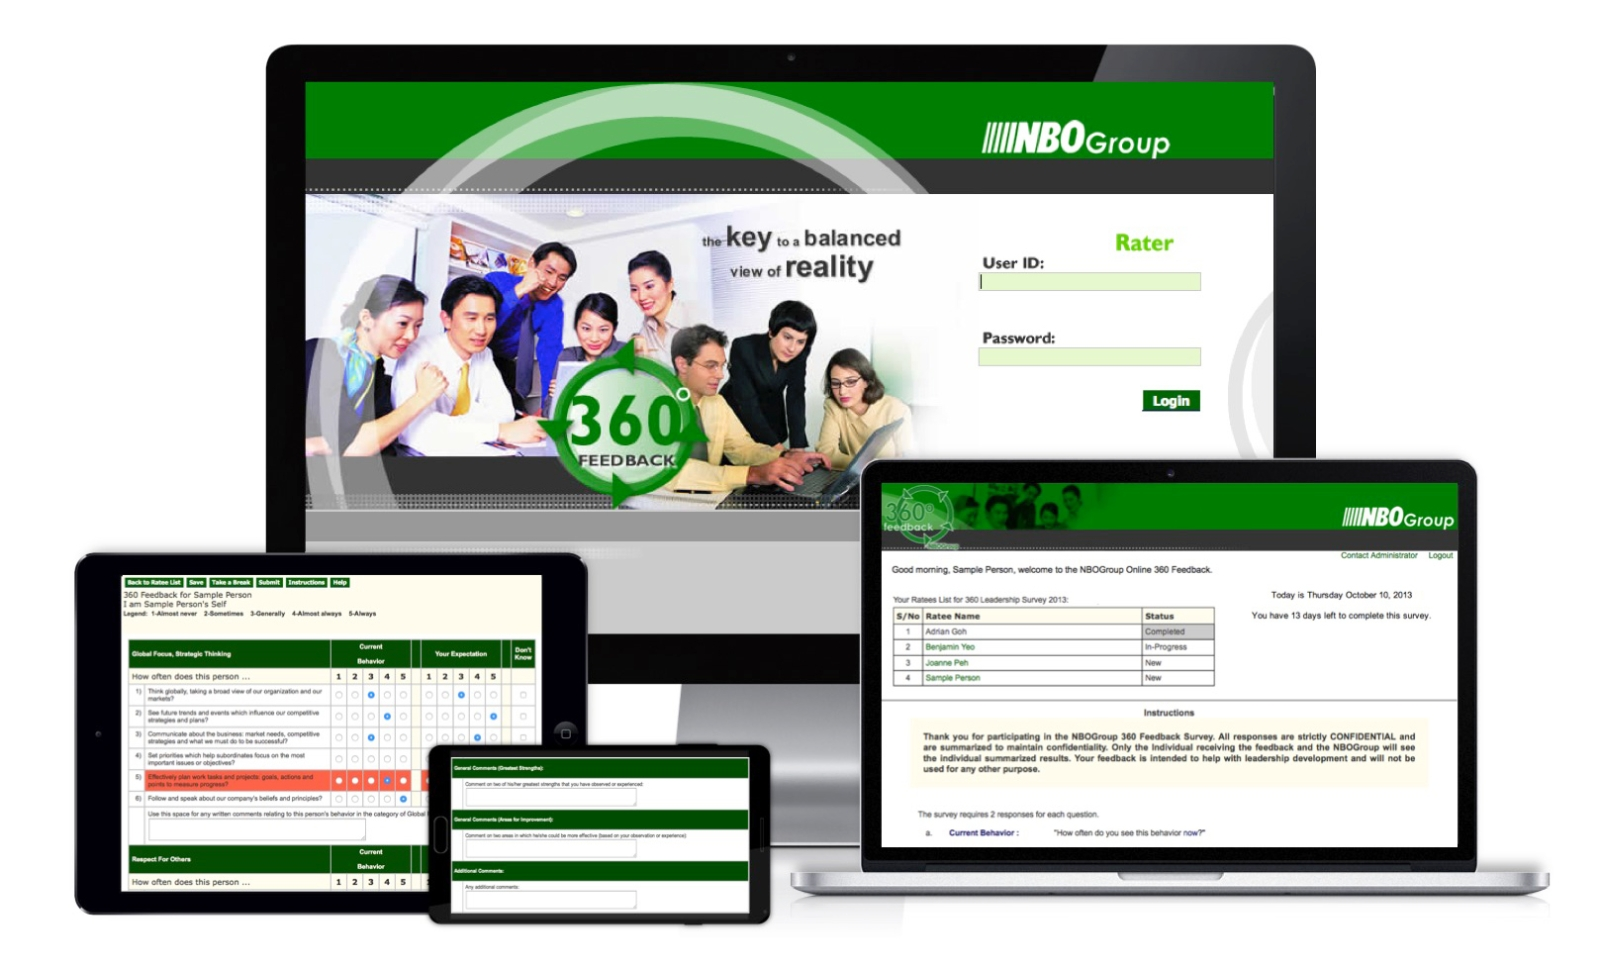 NBOGroup 360 Feedback Tool